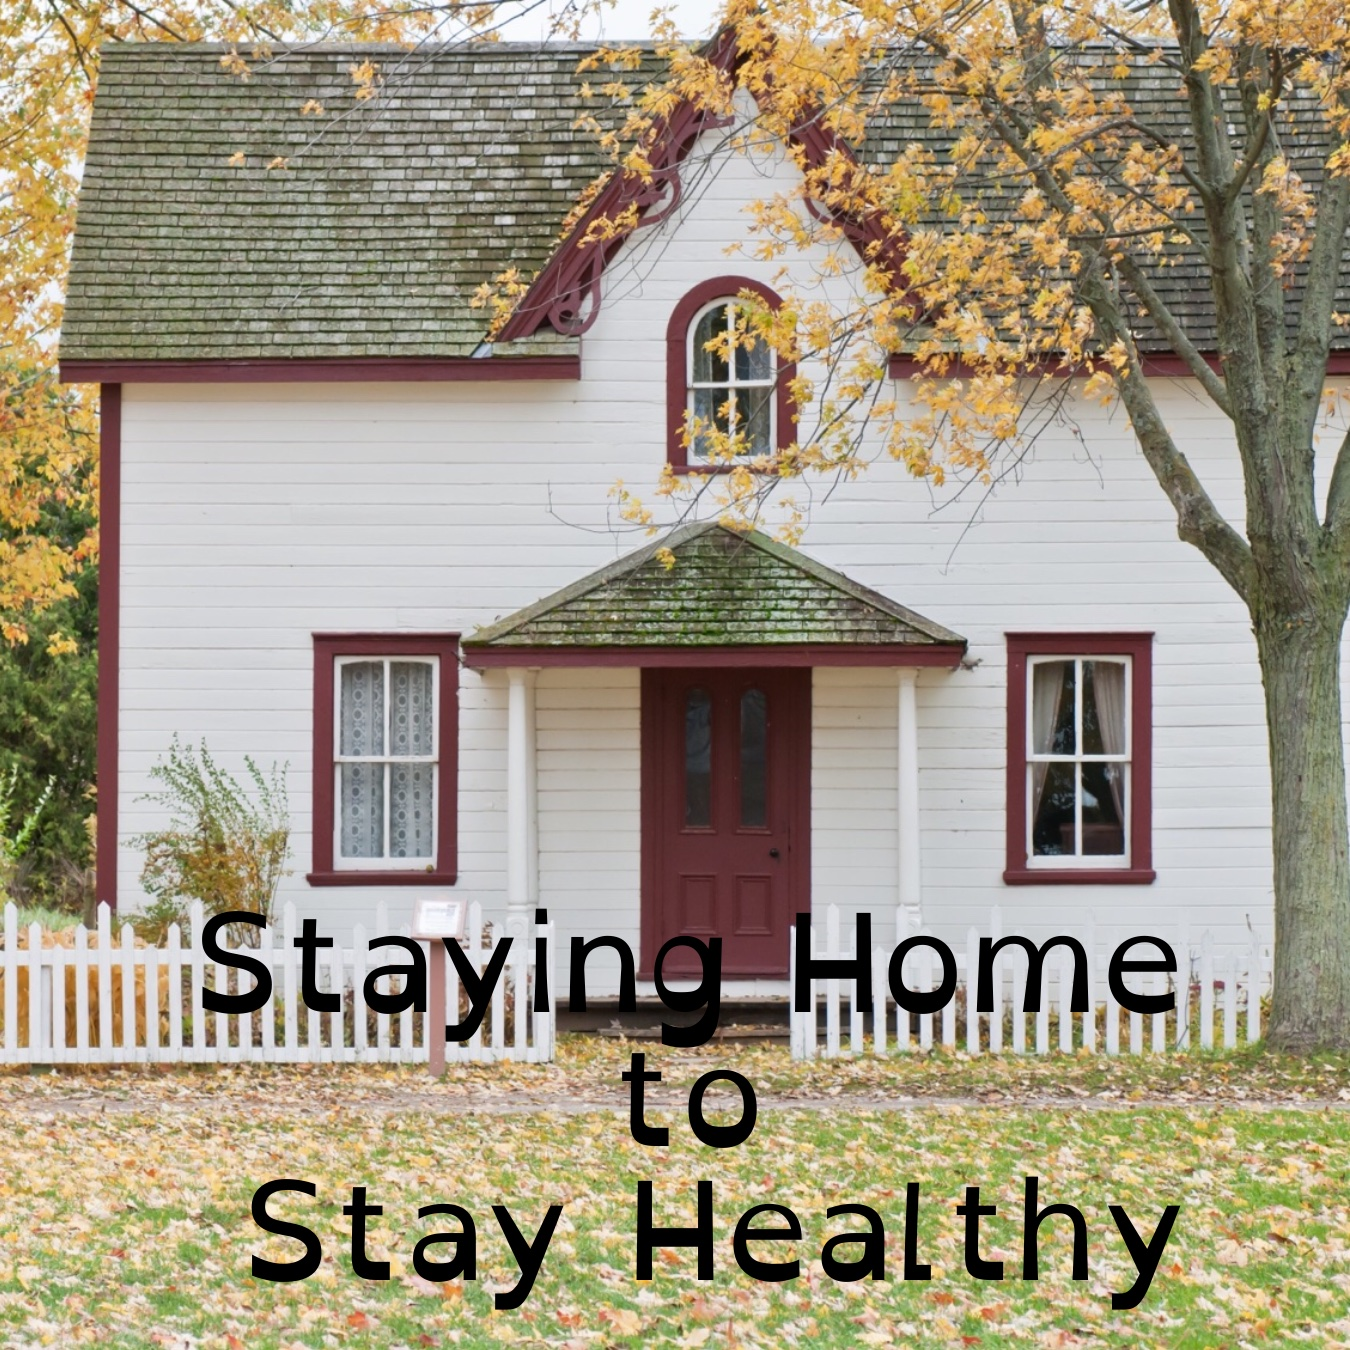 Staying Home To Stay Healthy